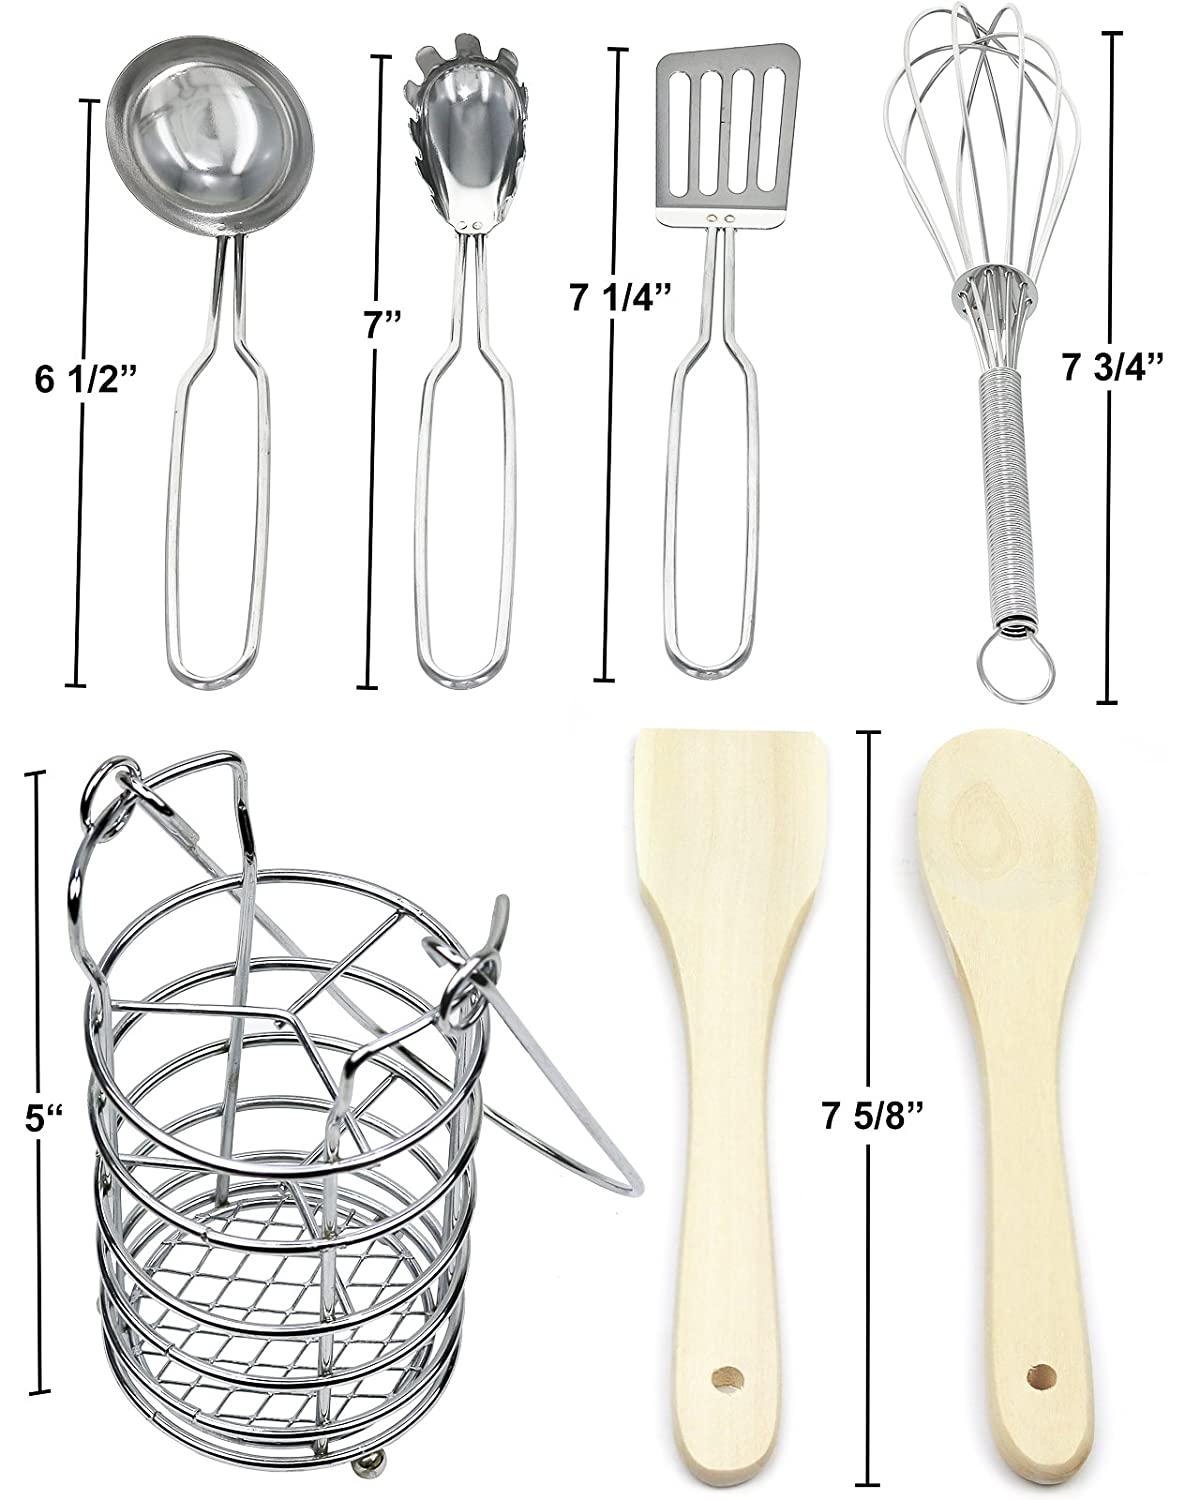 Click N Play 7 Piece Kitchen Cooking Utensils Play Set In Holder CNP1868